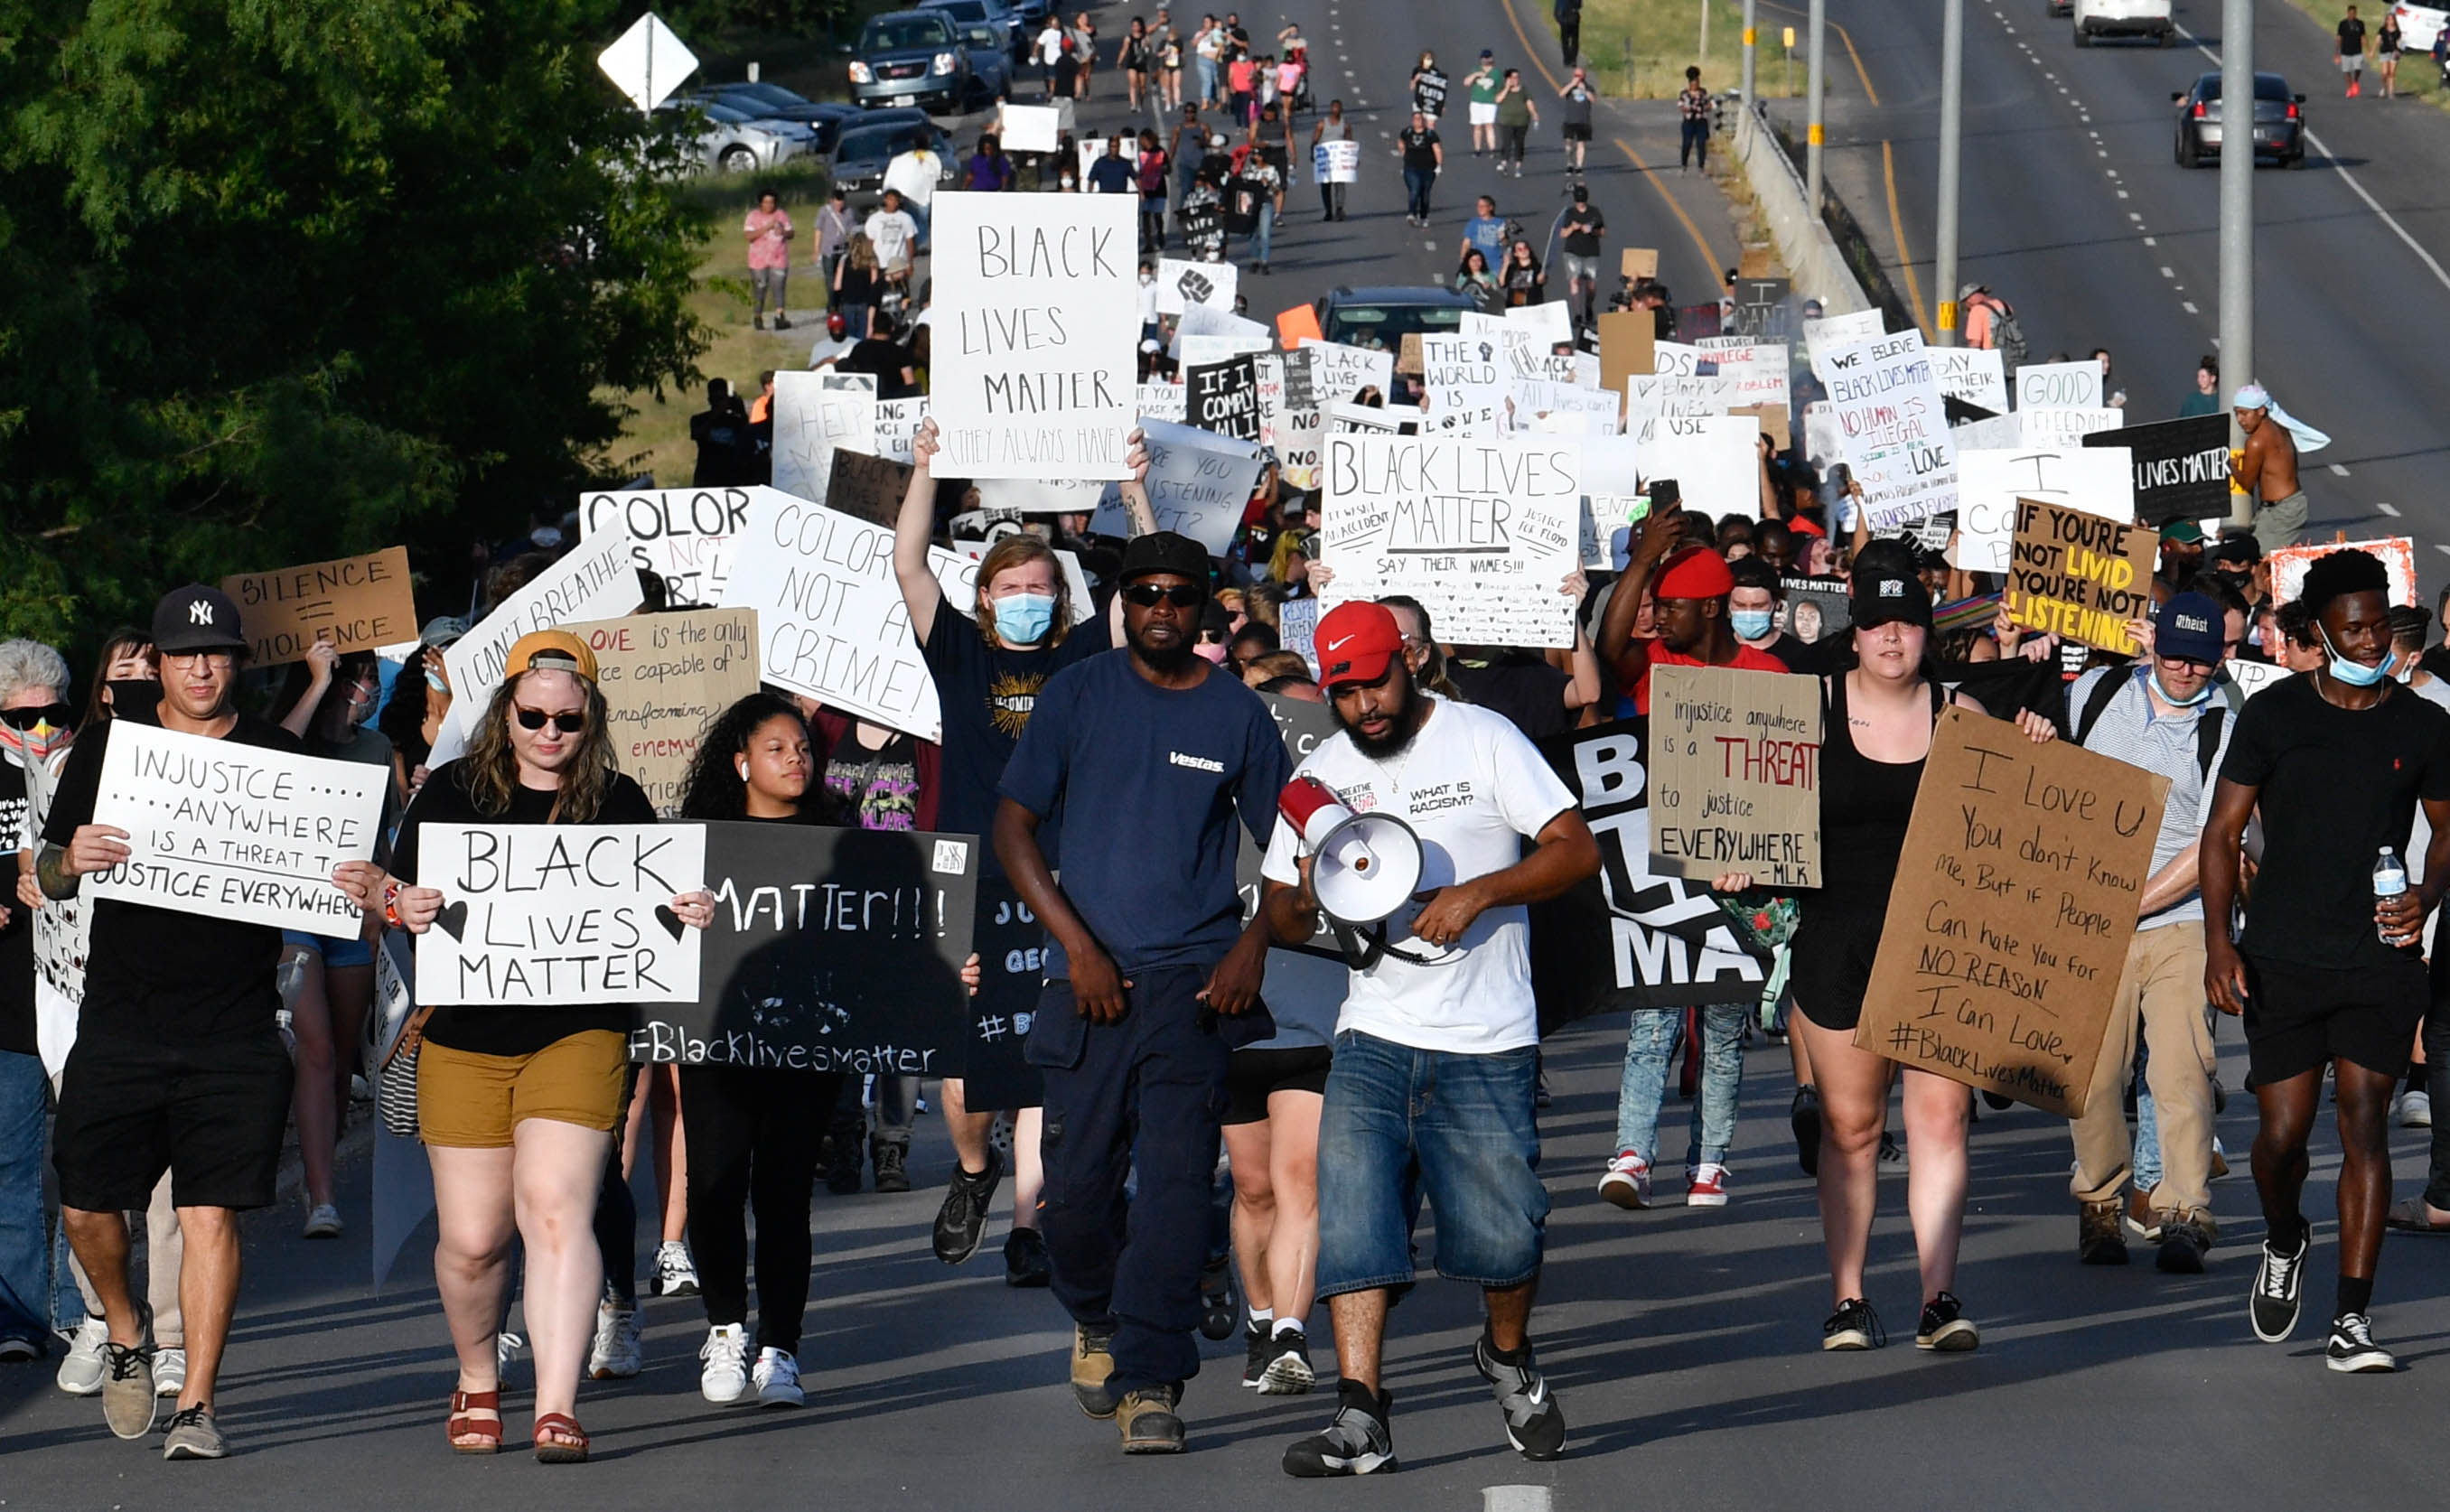 Demonstrators march over the Martin Luther King Jr. bridge on their way into downtown Abilene Thursday June 4, 2020. The group, protesting nationwide police brutality, peacefully marched to Grape St. before returning.